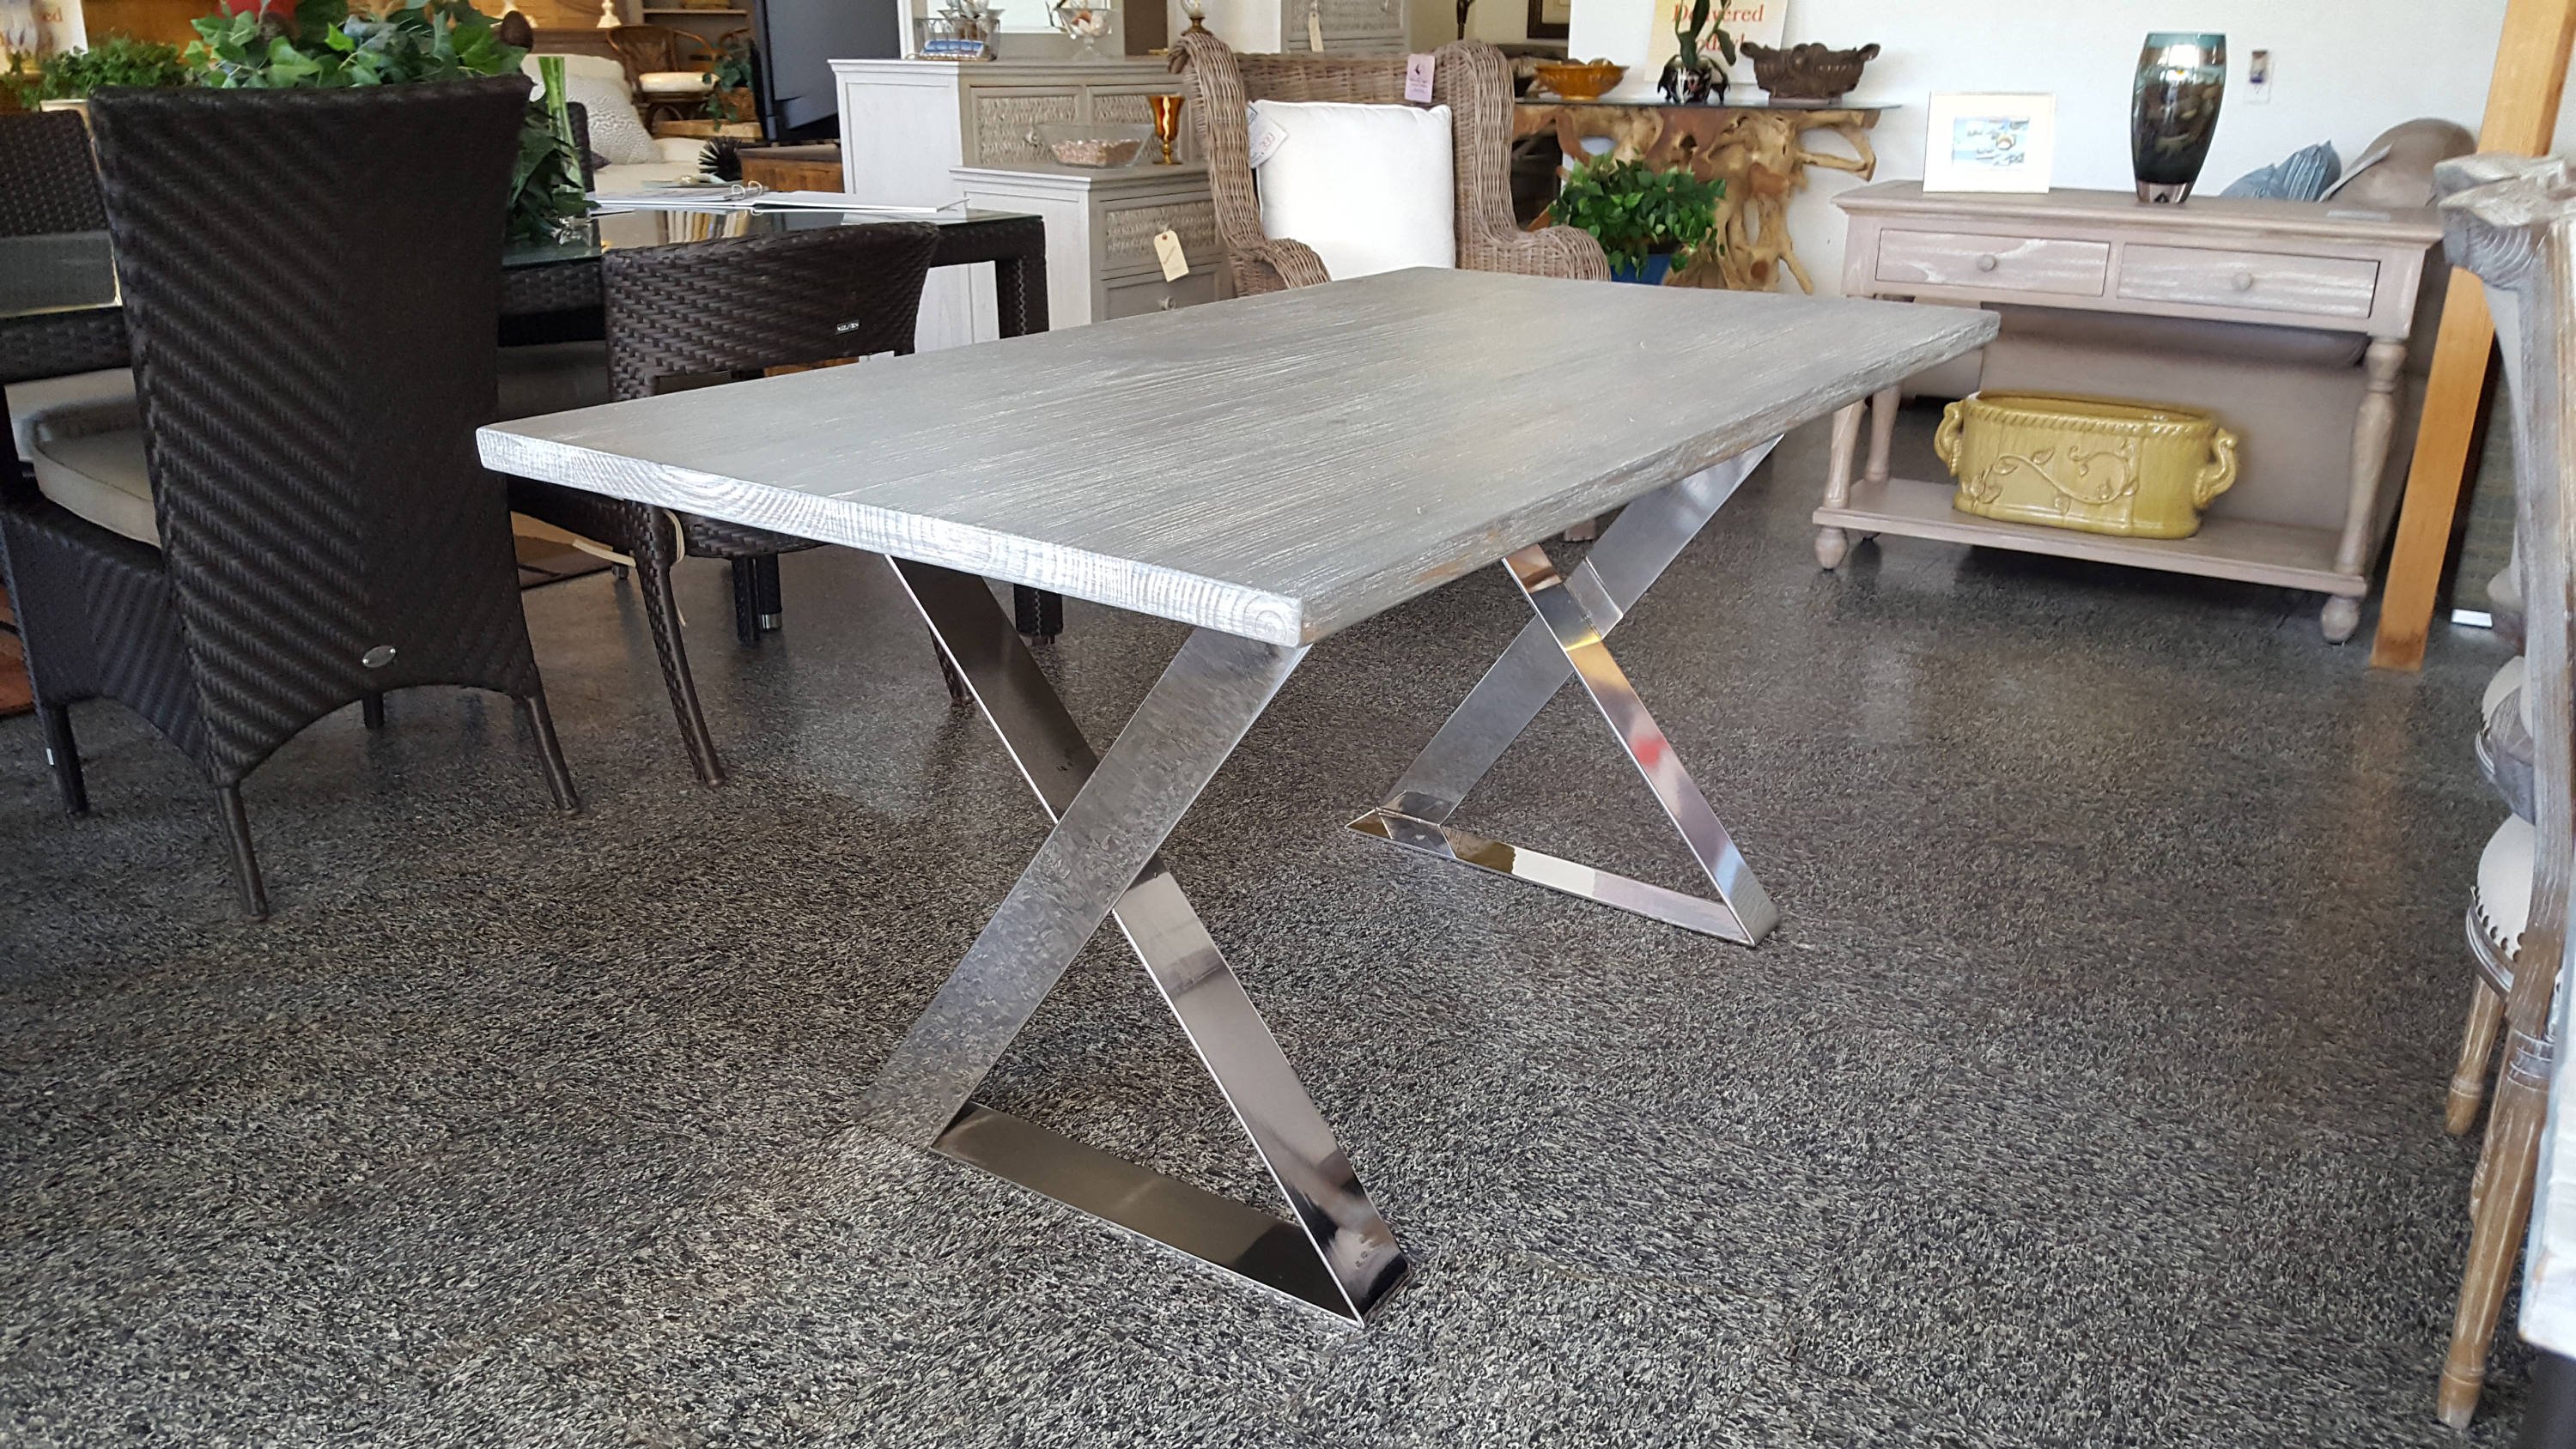 Sale driftwood distressed dining table kitchen table dining cafe driftwood distressed dining table kitchen table dining cafe table restaurant table steel legs dinette white gray watchthetrailerfo